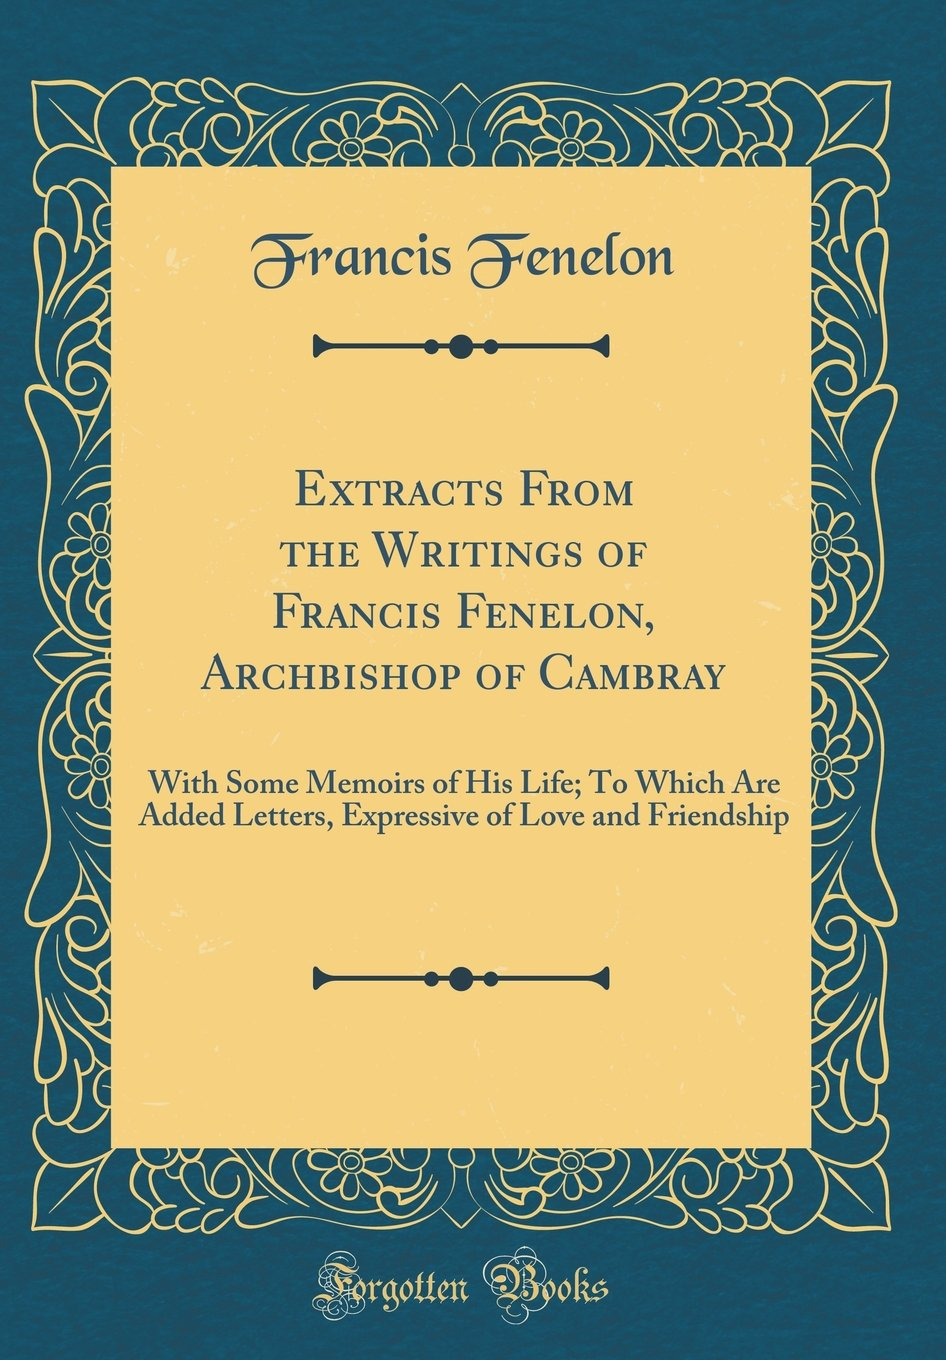 Read Online Extracts from the Writings of Francis Fenelon, Archbishop of Cambray: With Some Memoirs of His Life; To Which Are Added Letters, Expressive of Love and Friendship (Classic Reprint) PDF